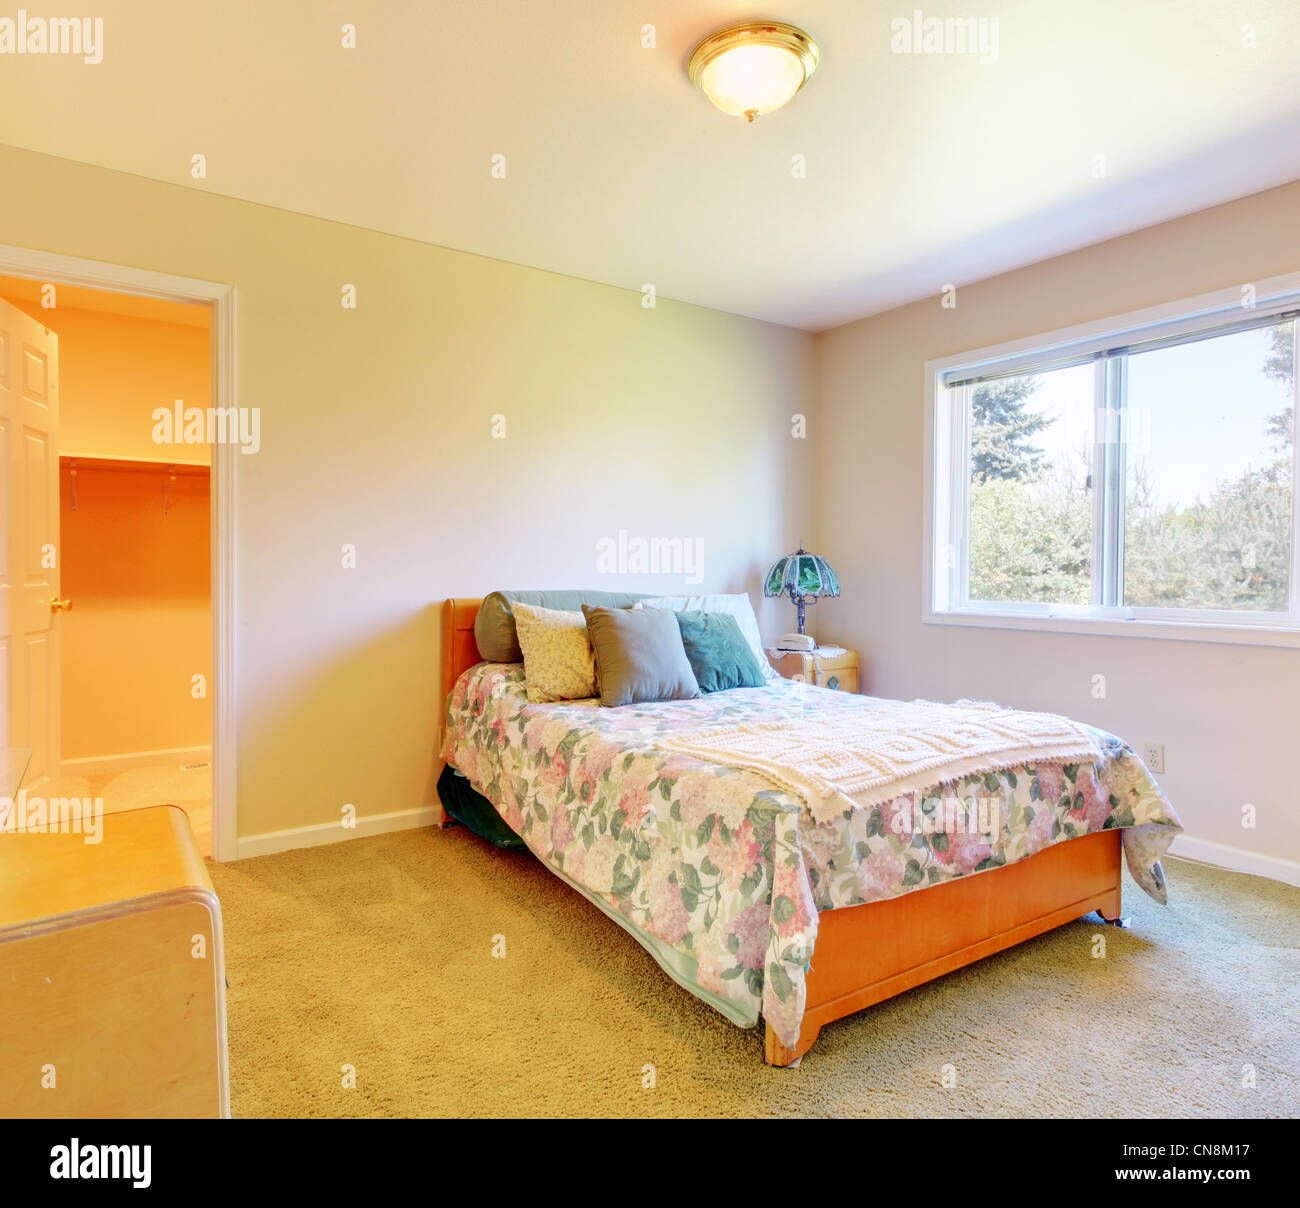 Small Bedroom With Simple Bed And Blue Pillows And Beige Walls Stock Photo Alamy